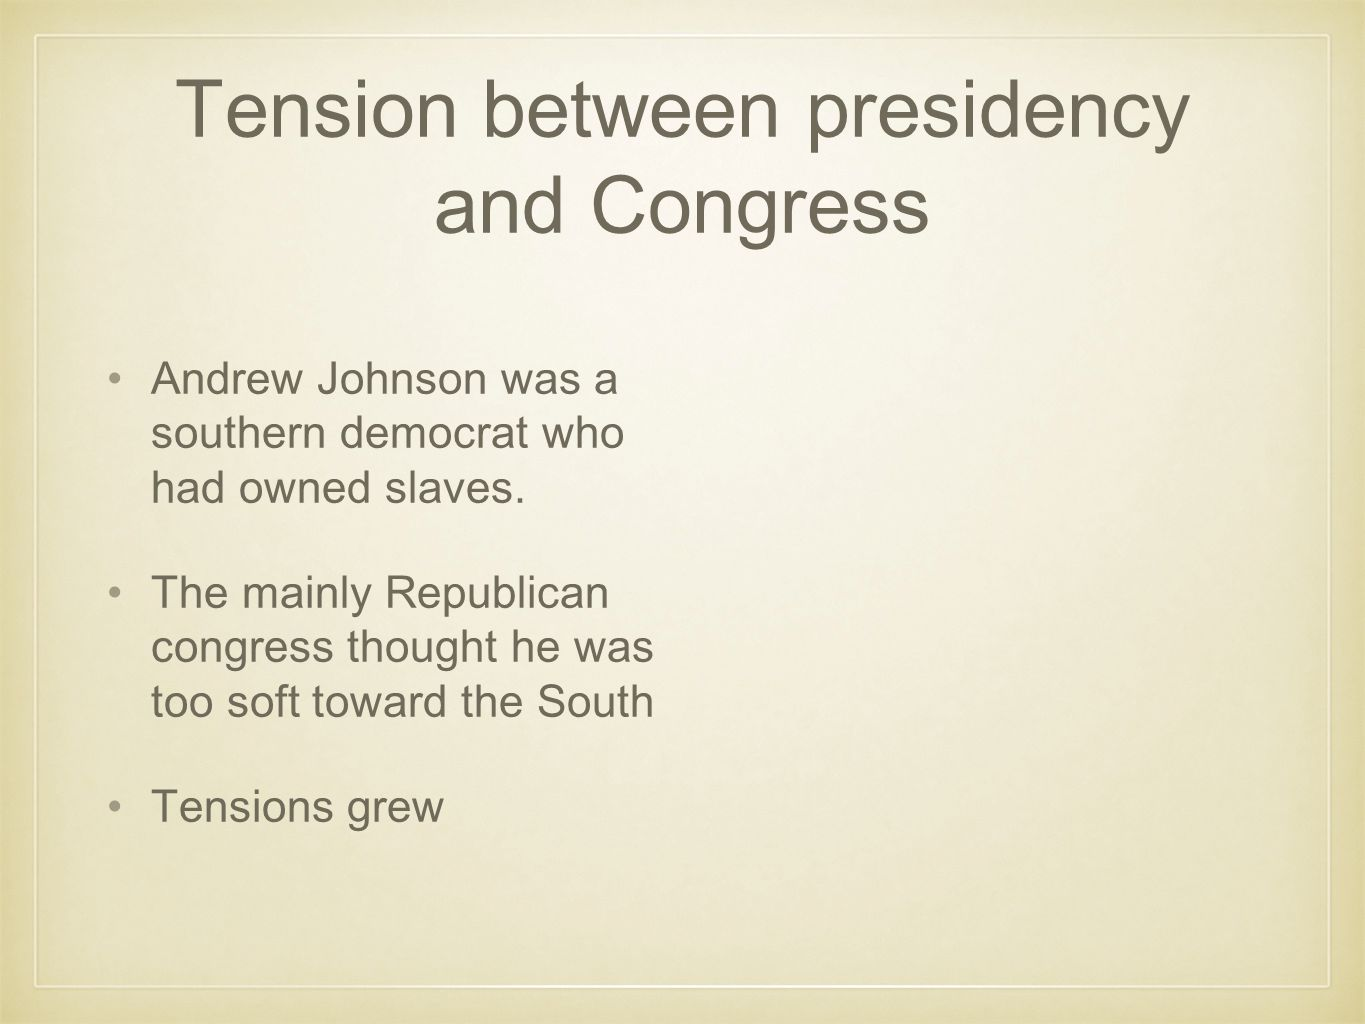 Tension between presidency and Congress